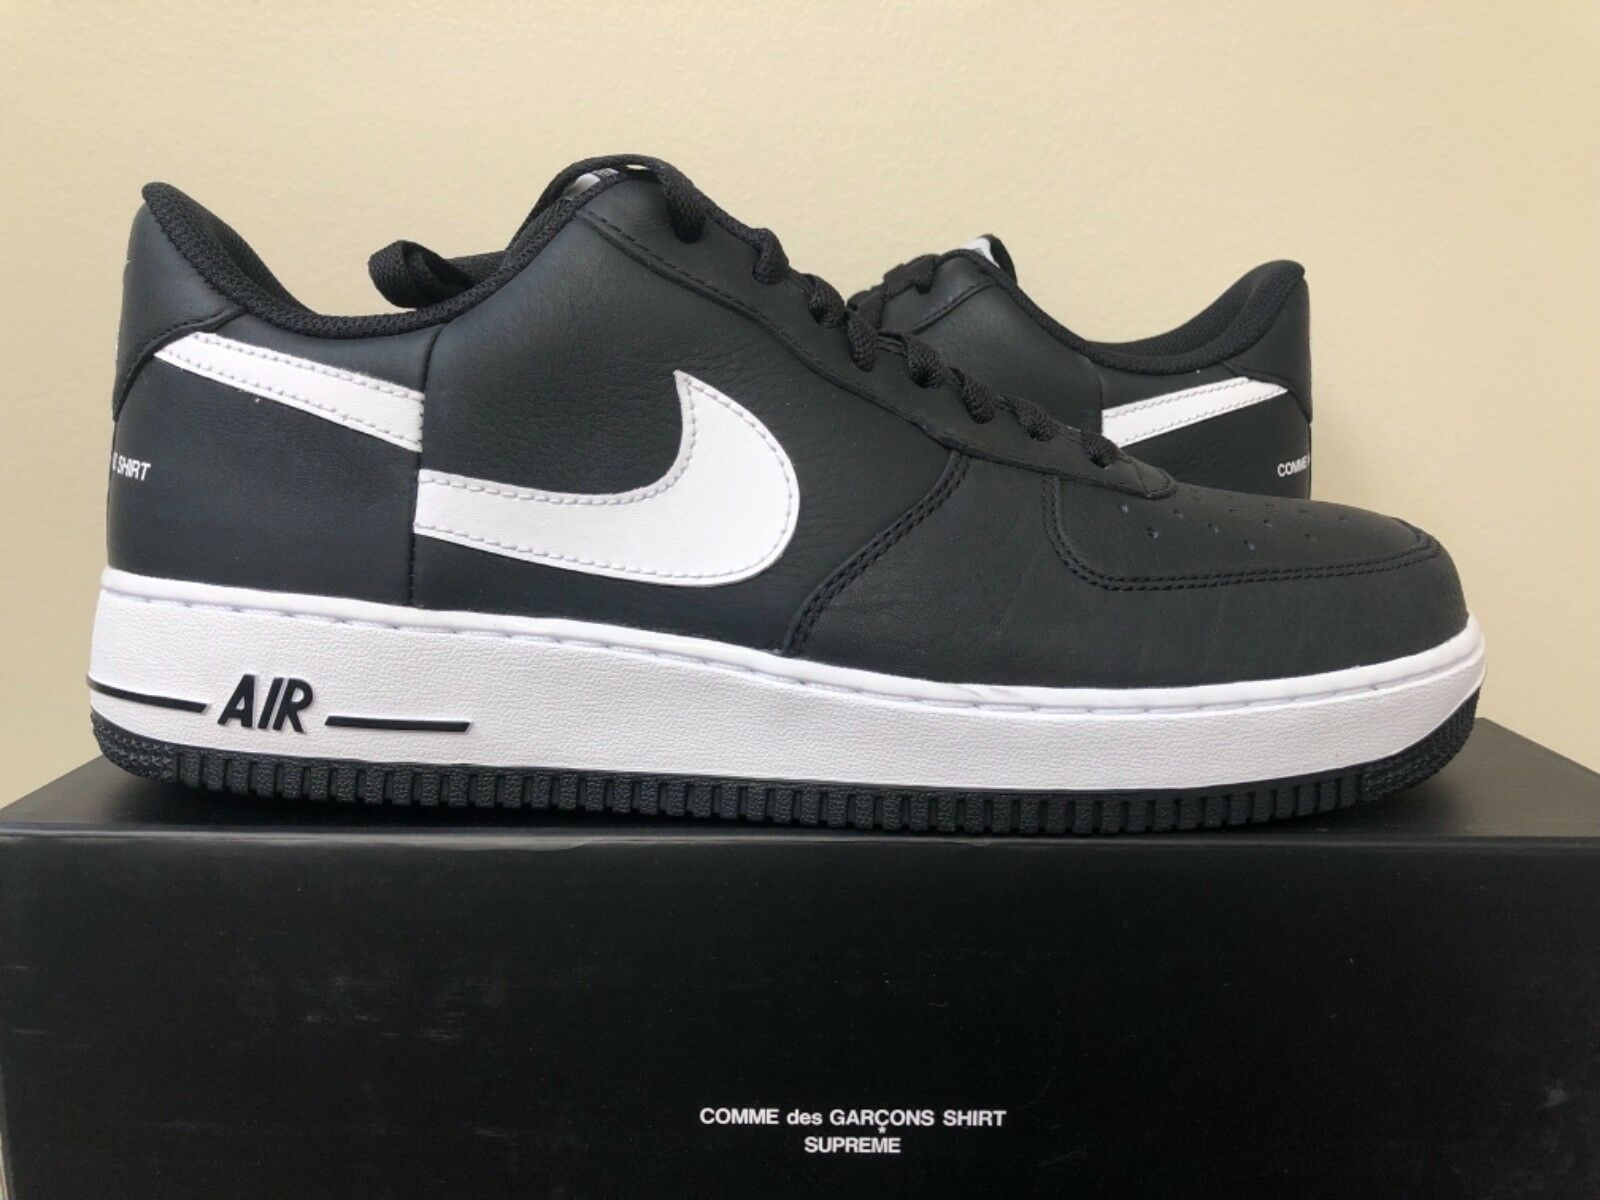 Nike Air Force 1 x Supreme x CDG Black AR7623-001 Size 11-13 100% Authentic